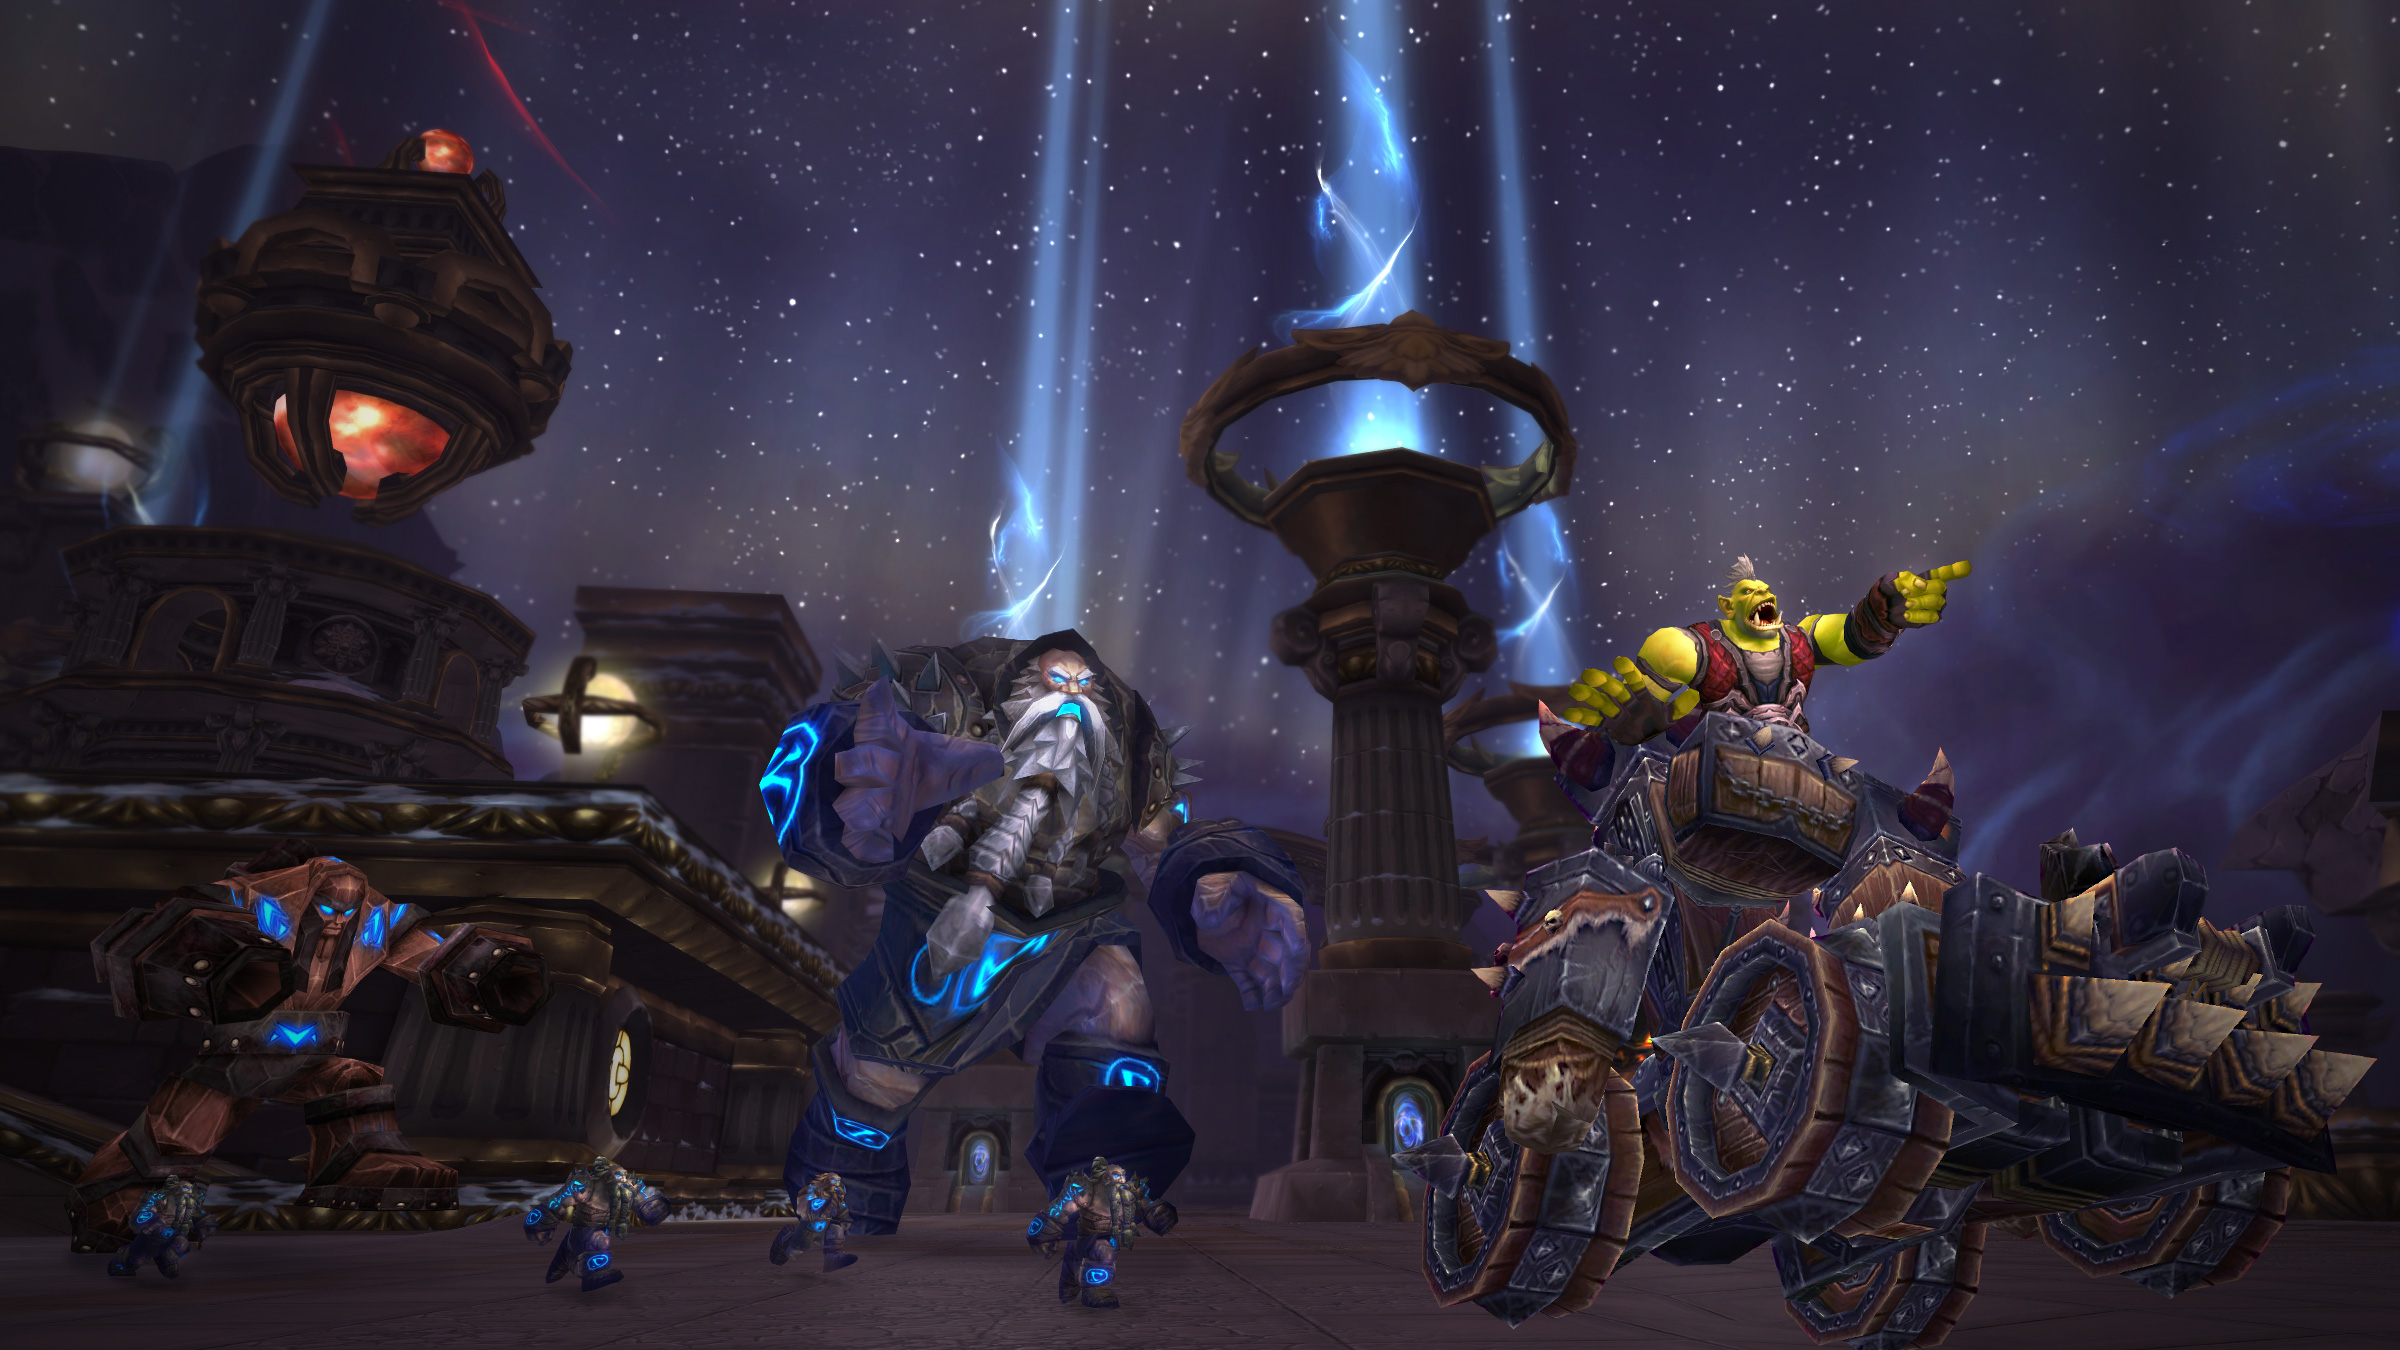 Wrath of the Lich King Timewalking Returns—July 1-8